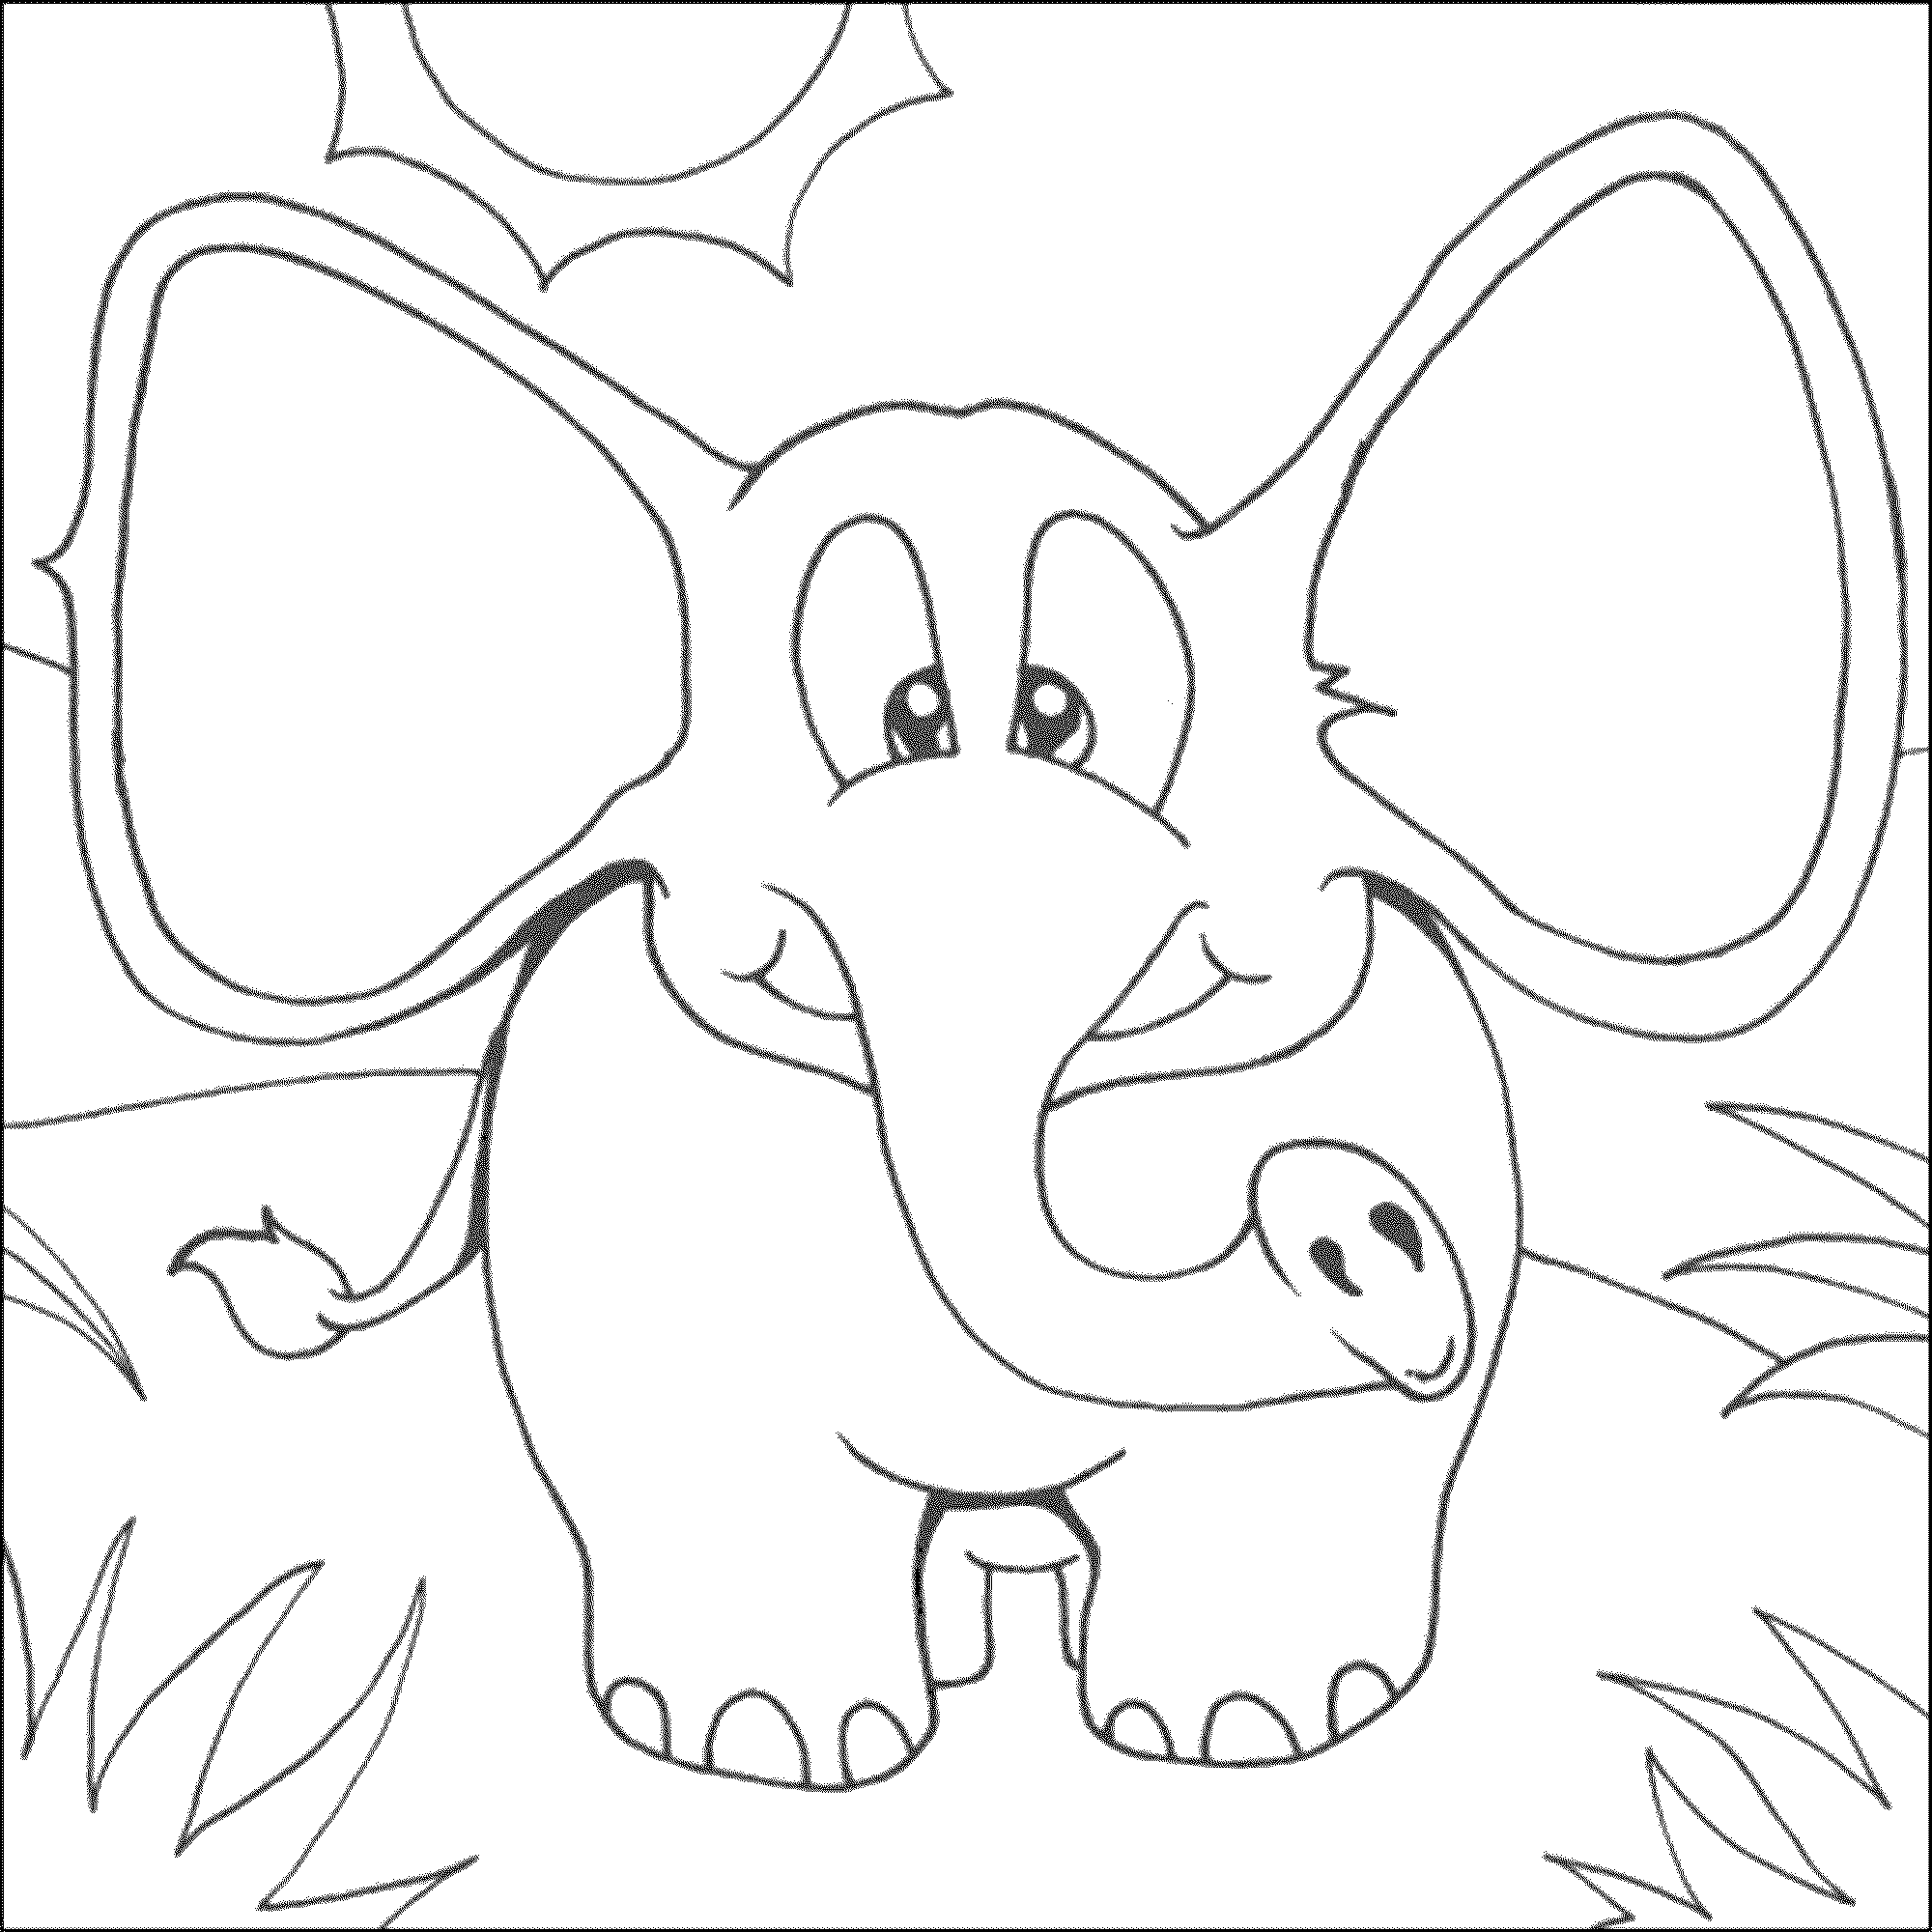 elephants coloring pages print download teaching kids through elephant coloring coloring pages elephants